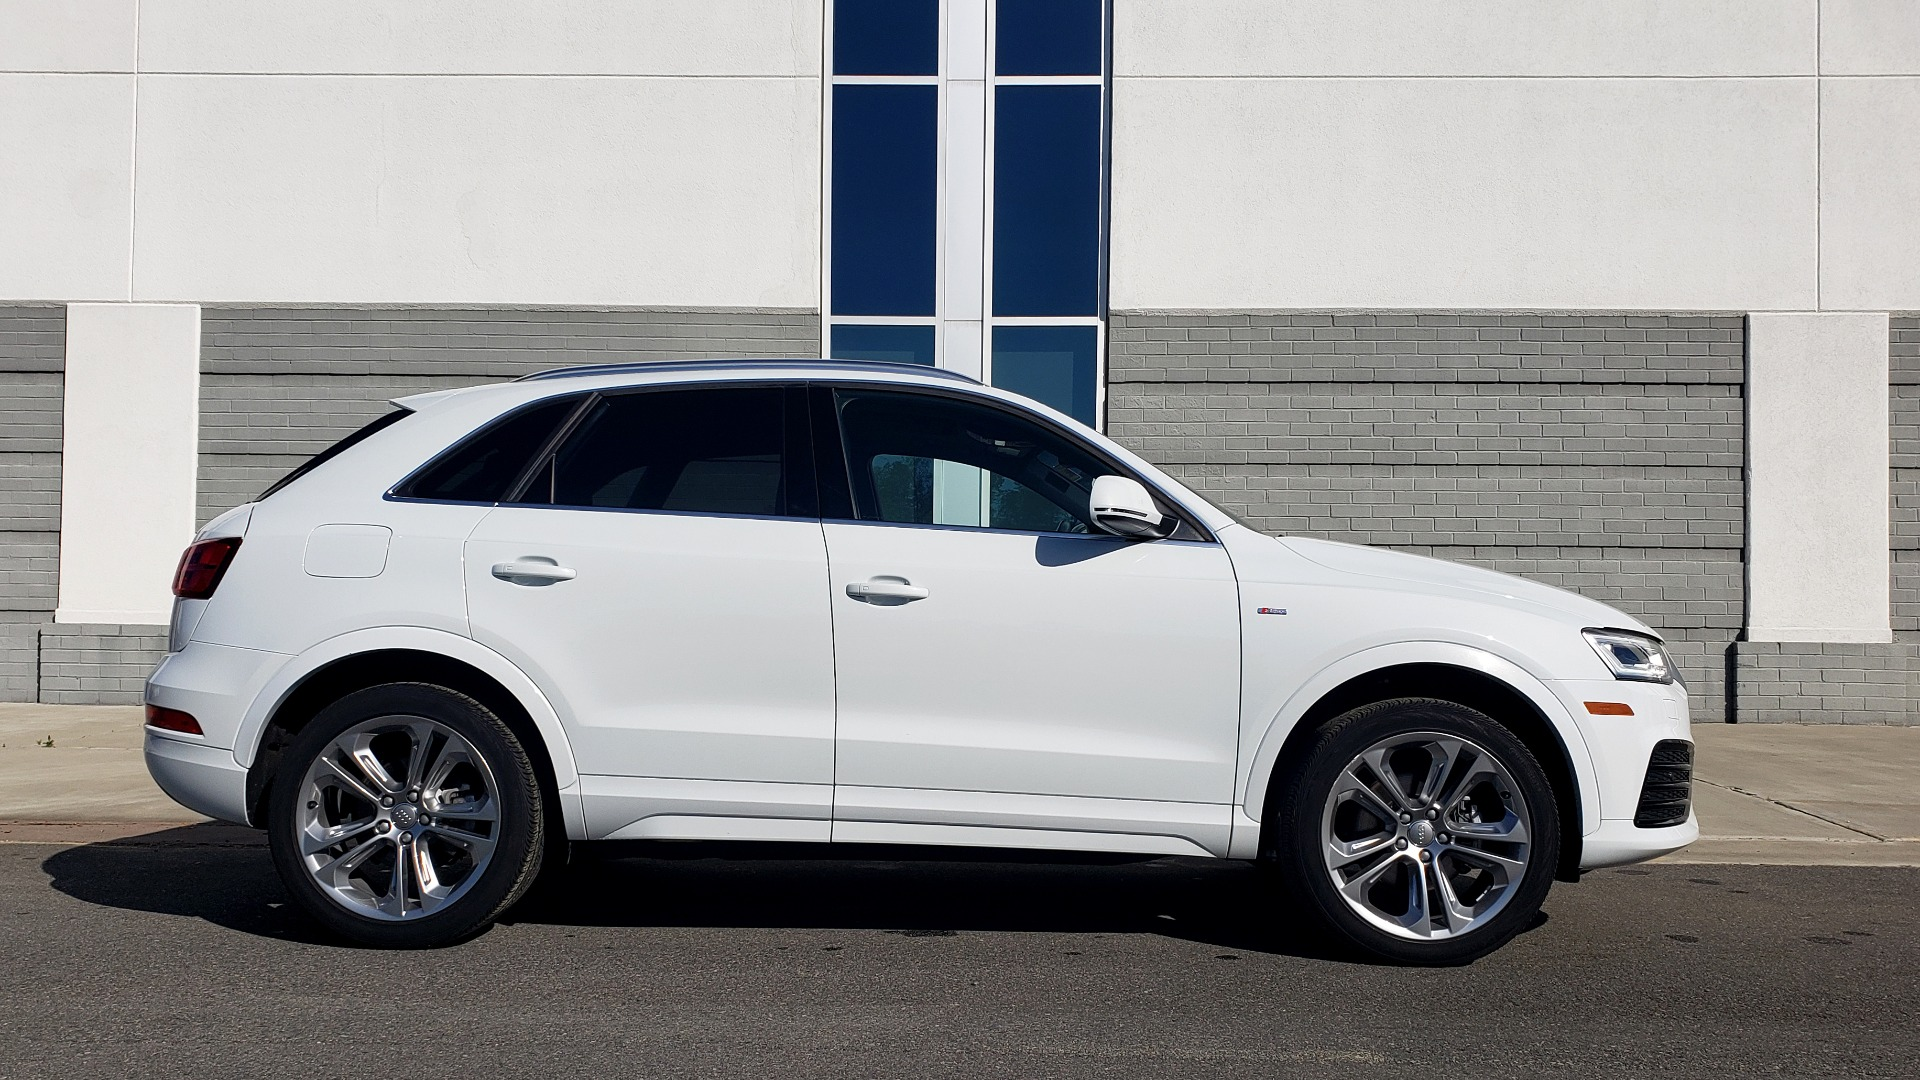 Used 2018 Audi Q3 PREMIUM PLUS 2.0T / SPORT PKG / NAV / BOSE / SUNROOF / REARVIEW for sale Sold at Formula Imports in Charlotte NC 28227 5